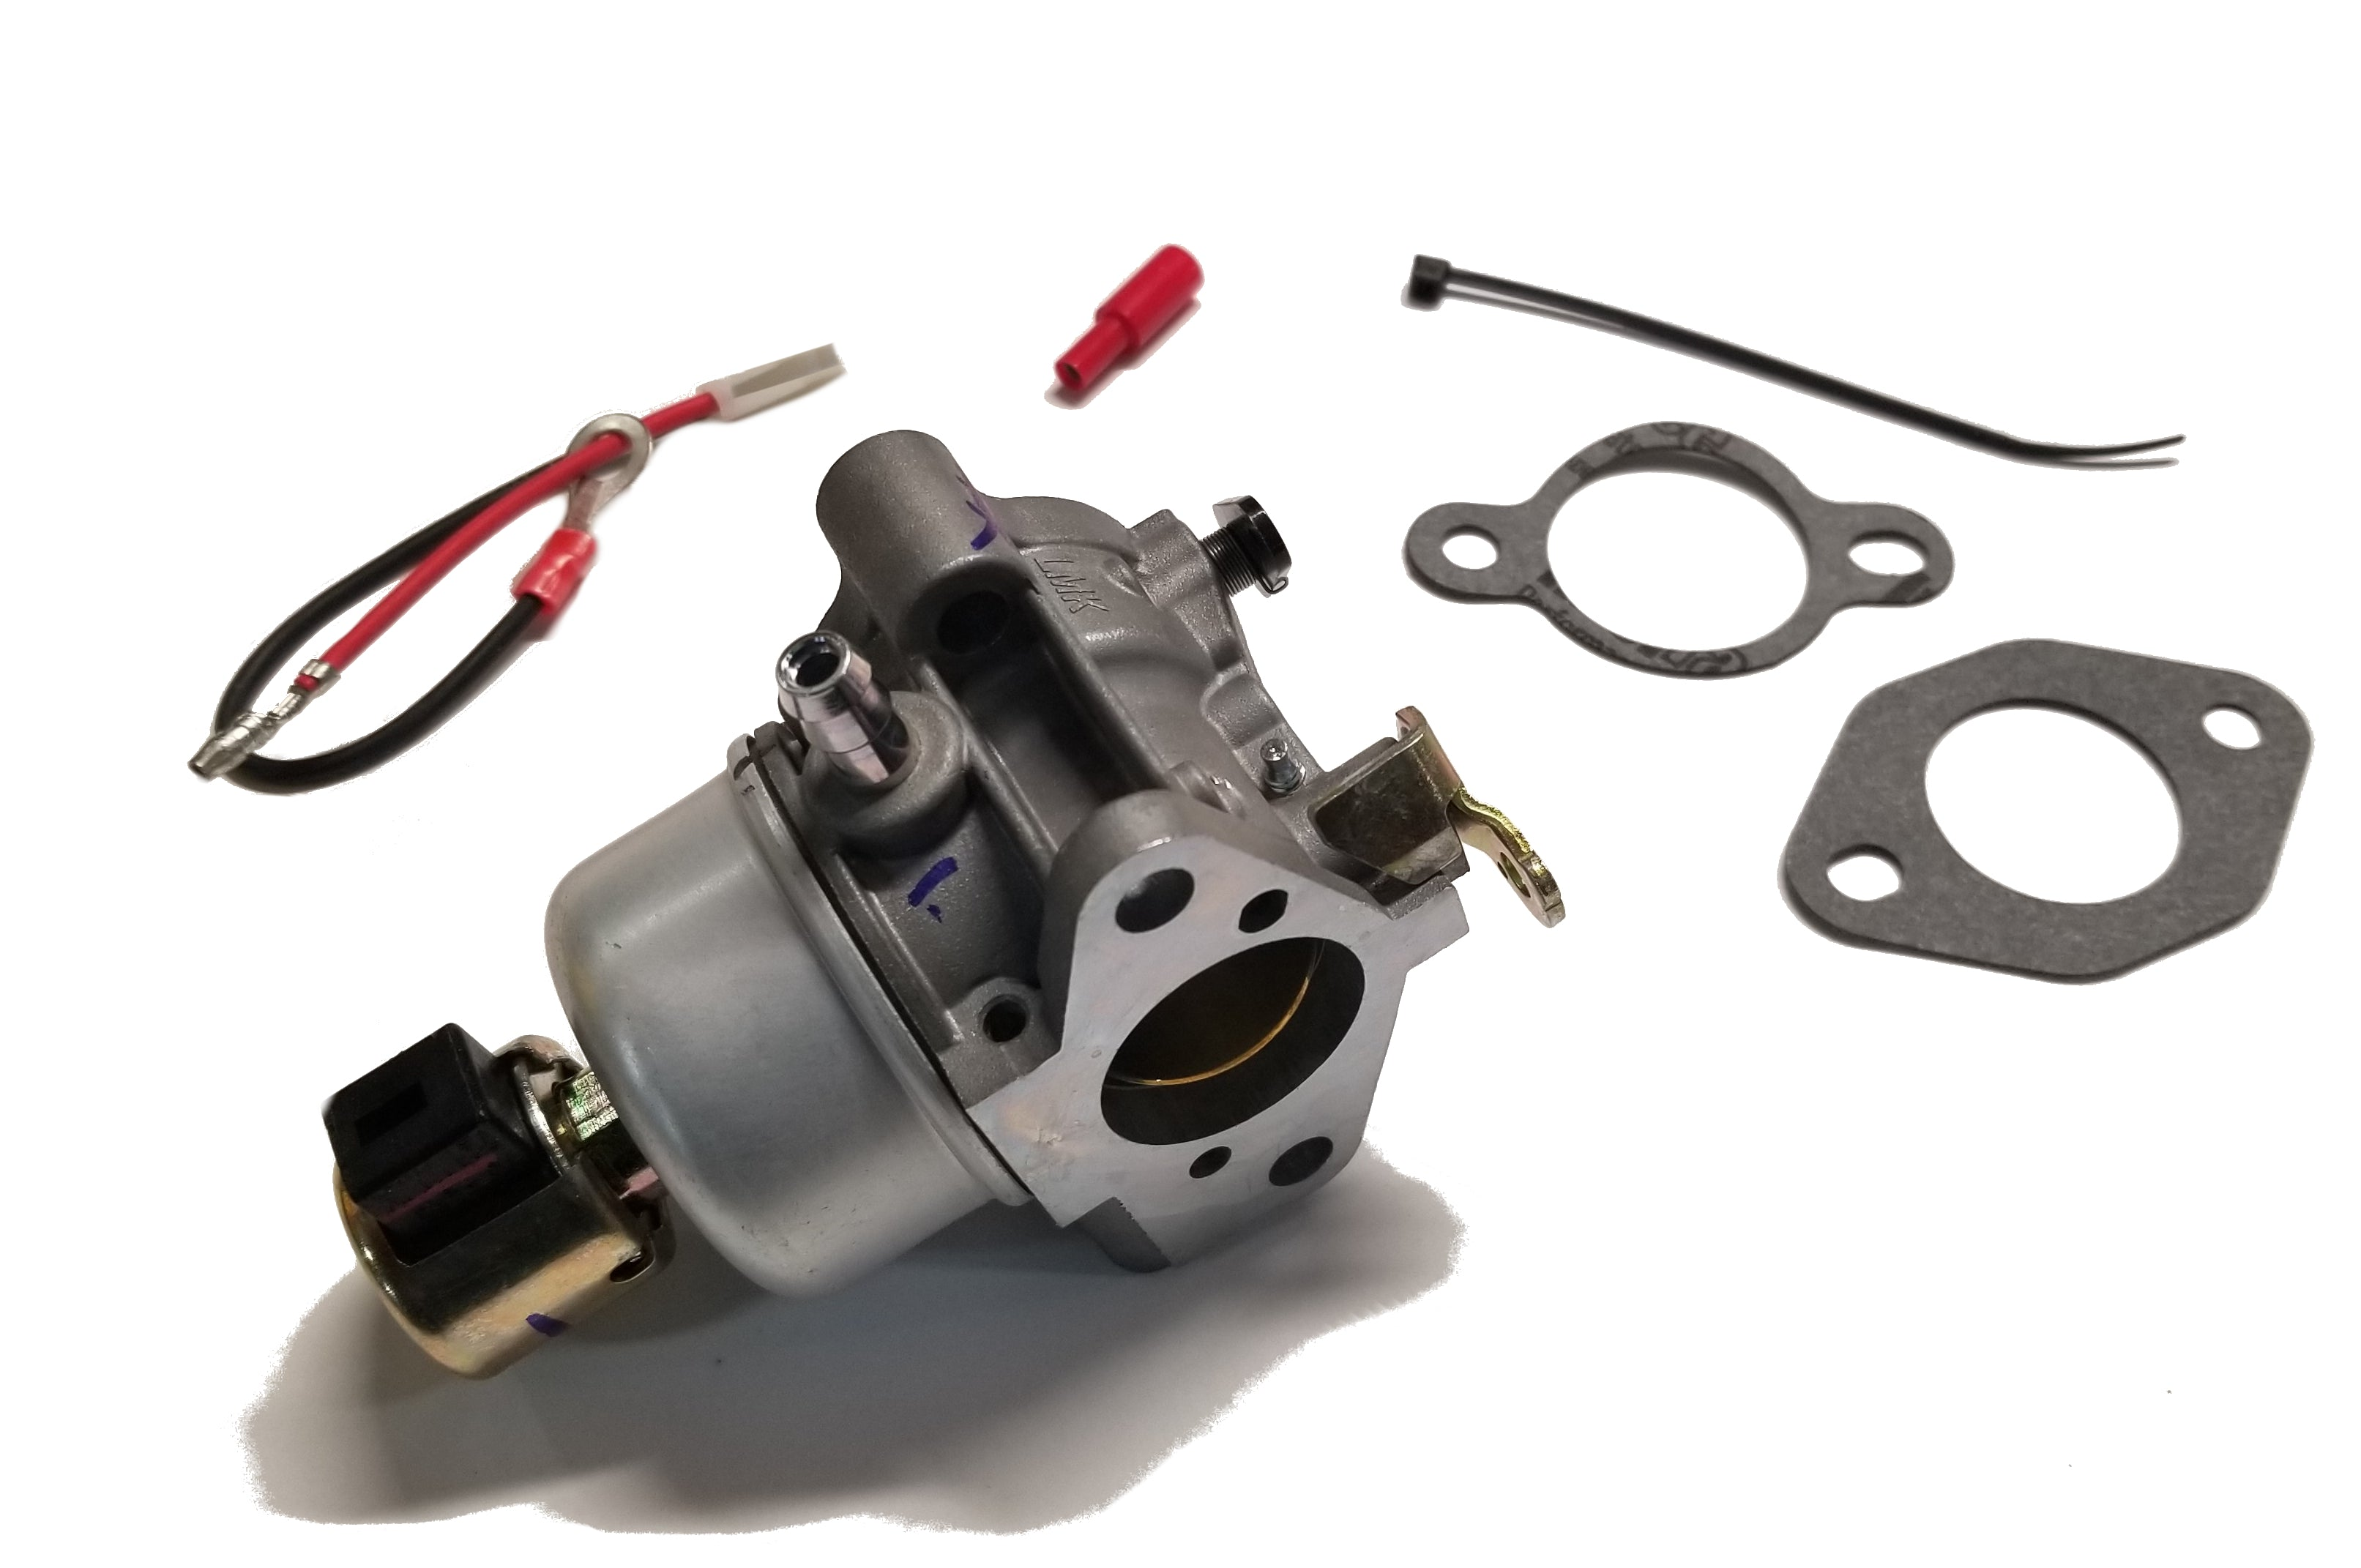 John Deere Original Equipment Carburetor Kit - AM131951